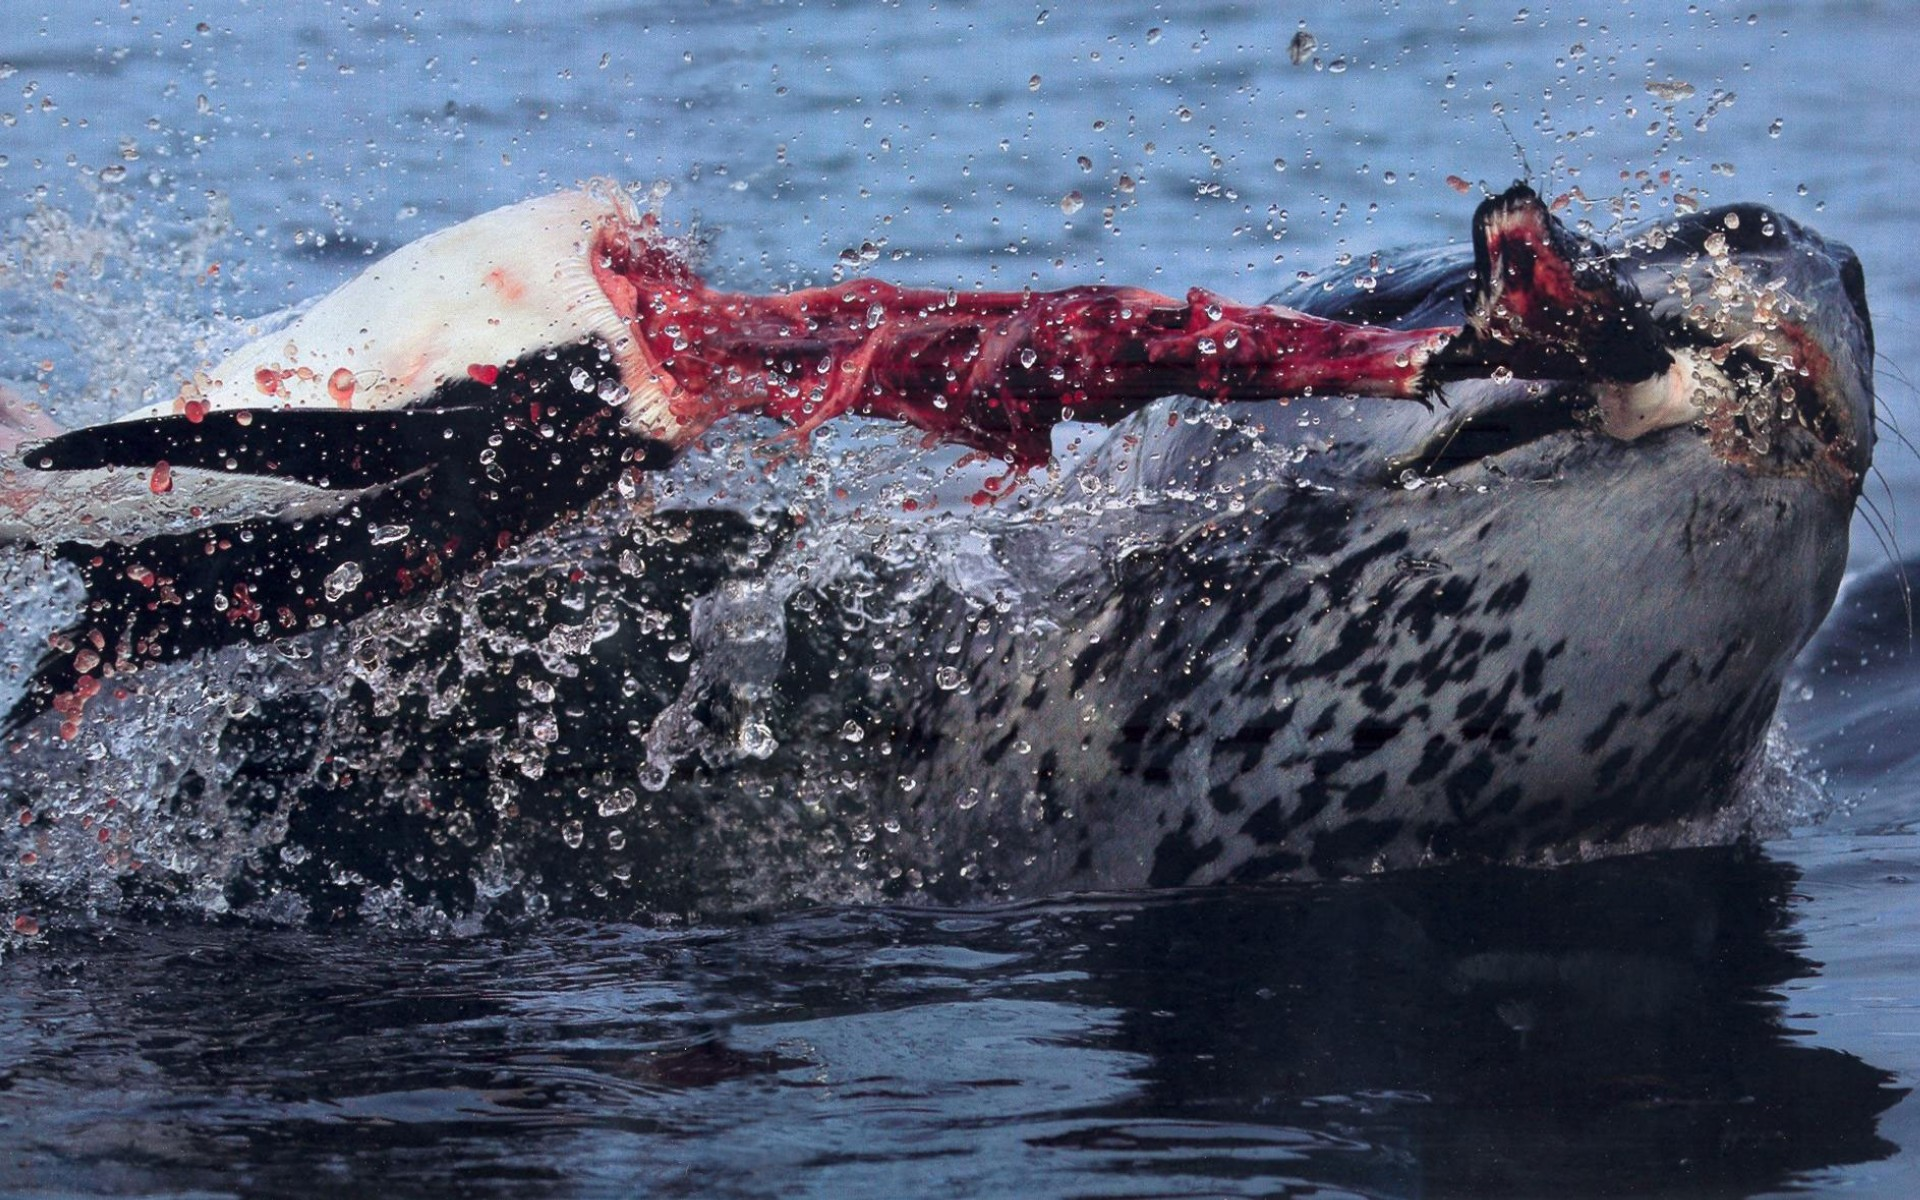 Leopard Seal Attacks Shark